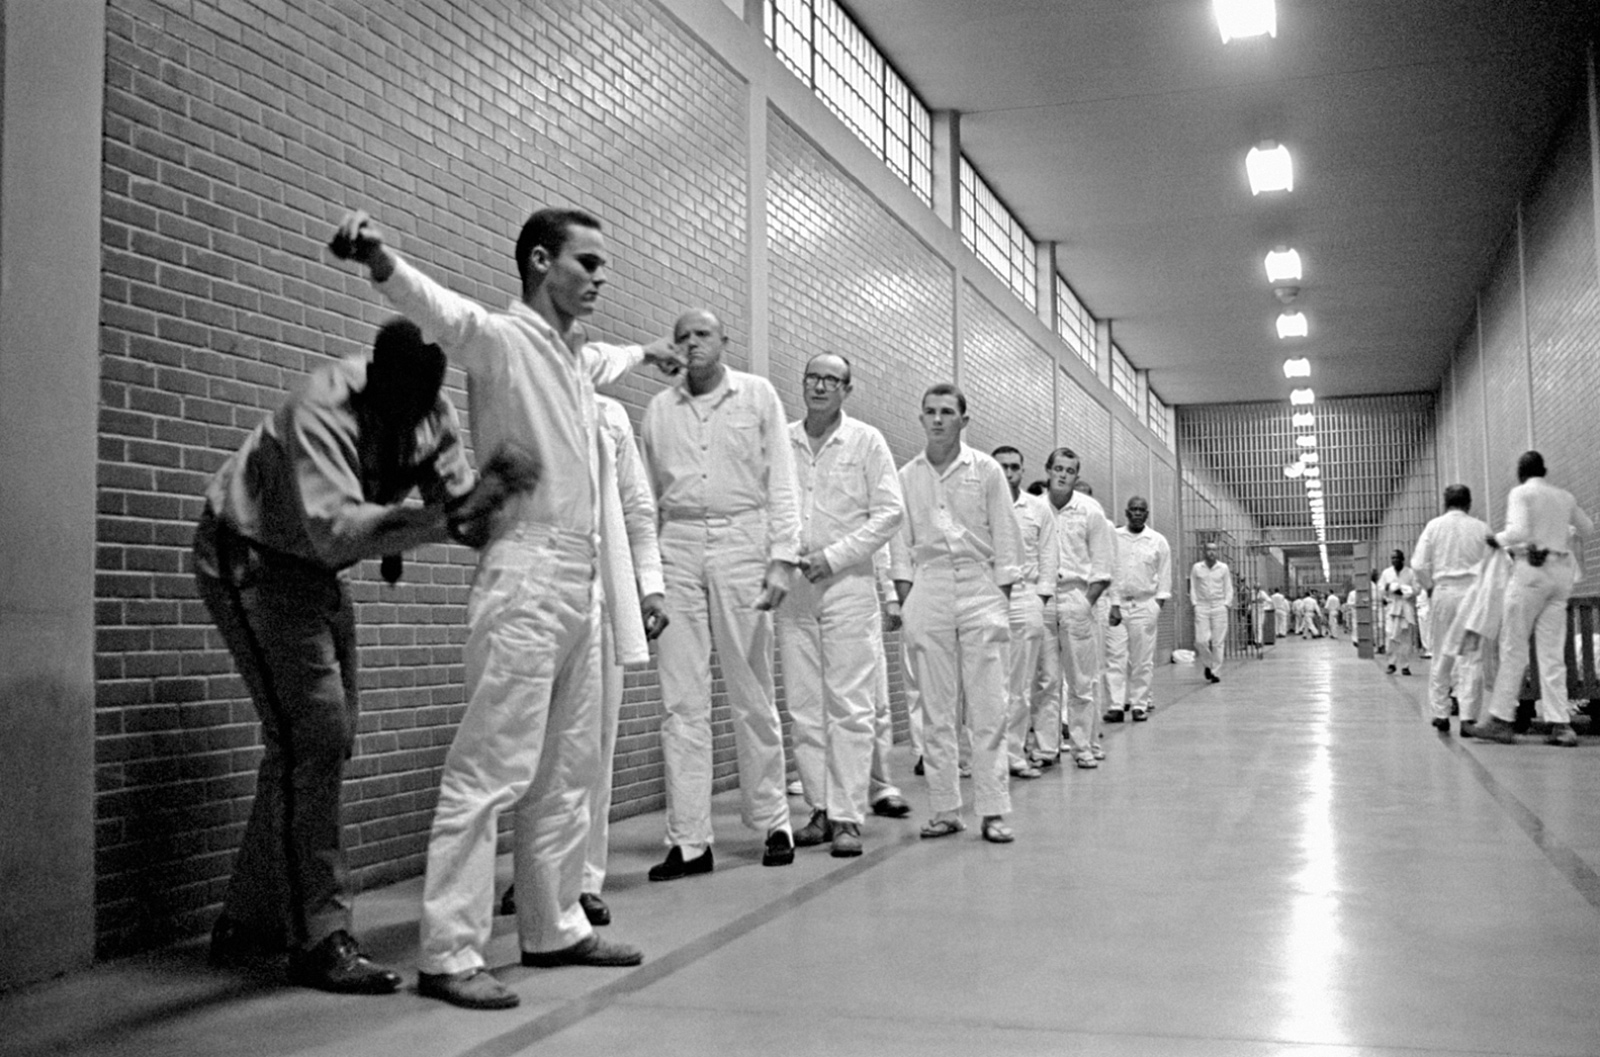 A shakedown of inmates in the main corridor of the Ellis Prison Farm, Huntsville, Texas, 1968; photograph by Danny Lyon from his 1971 book Conversations with the Dead, which has just been reissued by Phaidon. A retrospective of his work, 'Danny Lyon: Message to the Future,' will be on view at the Whitney Museum of American Art, New York City, June 17–September 25, 2016.